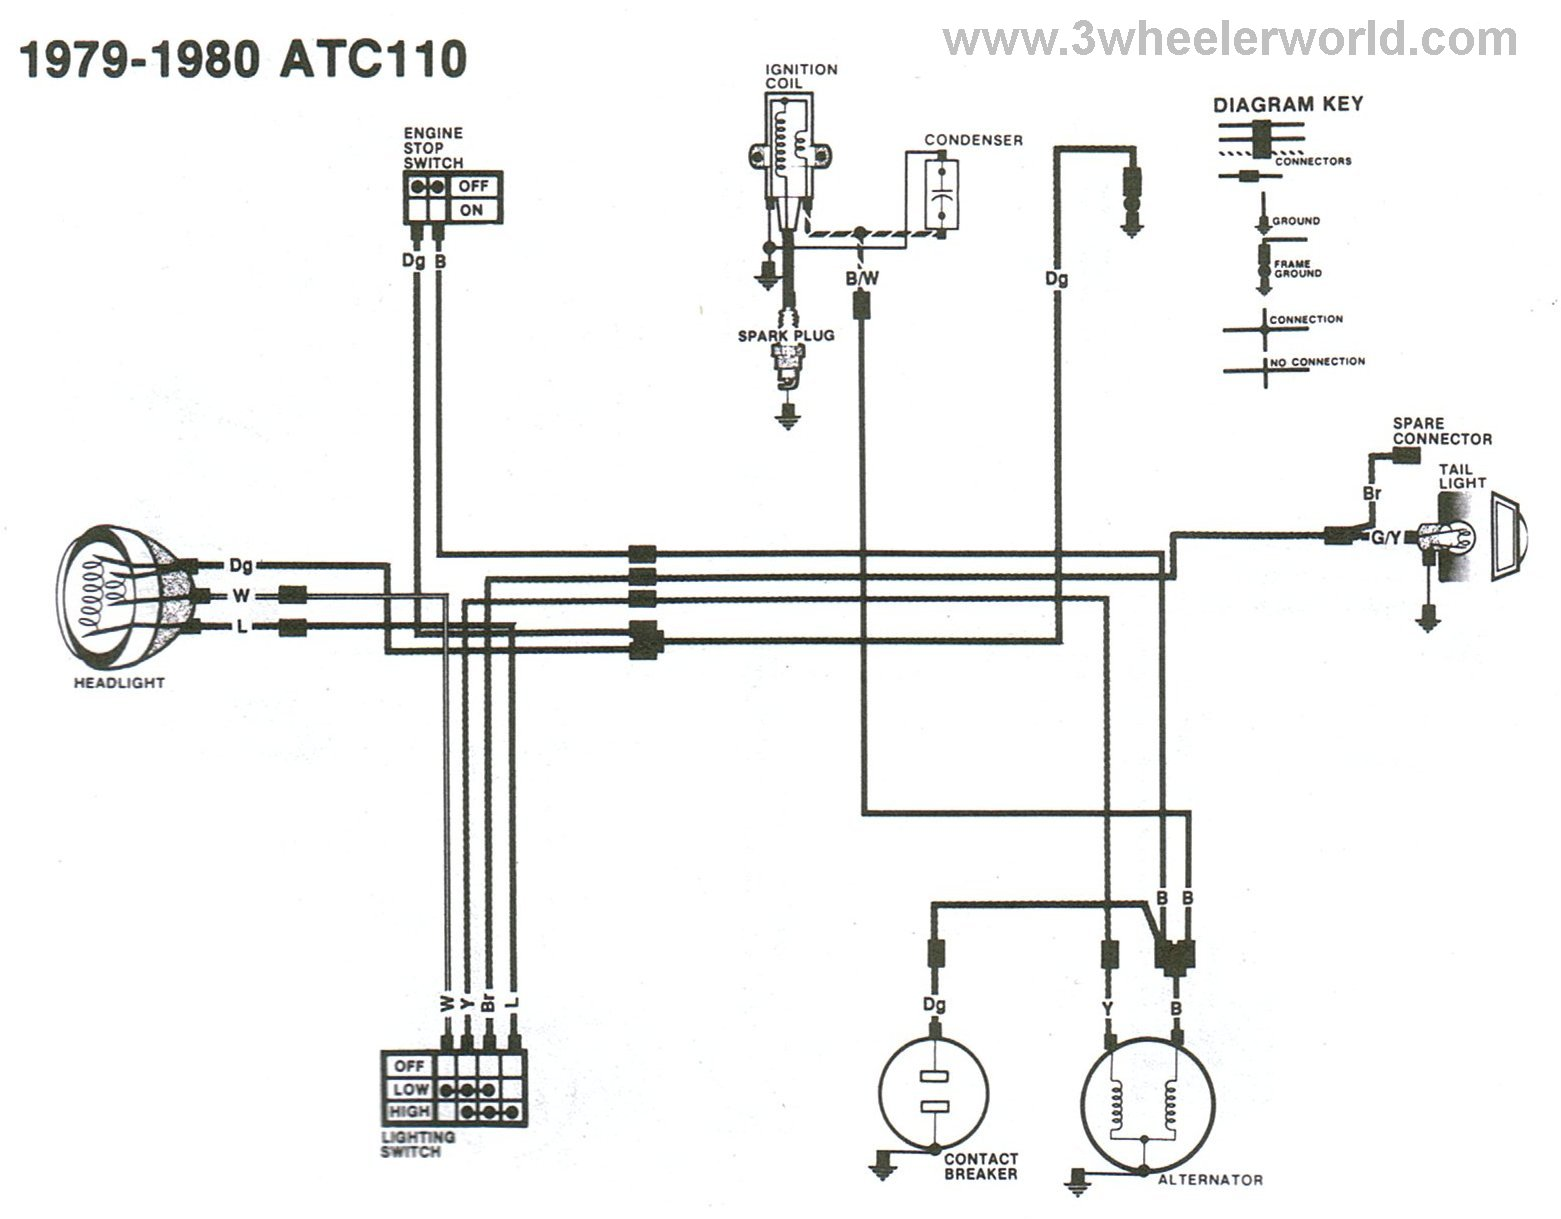 ATC110x79Thru80 3 wheeler world tech help honda wiring diagrams 1980 honda atc 110 wiring diagram at creativeand.co